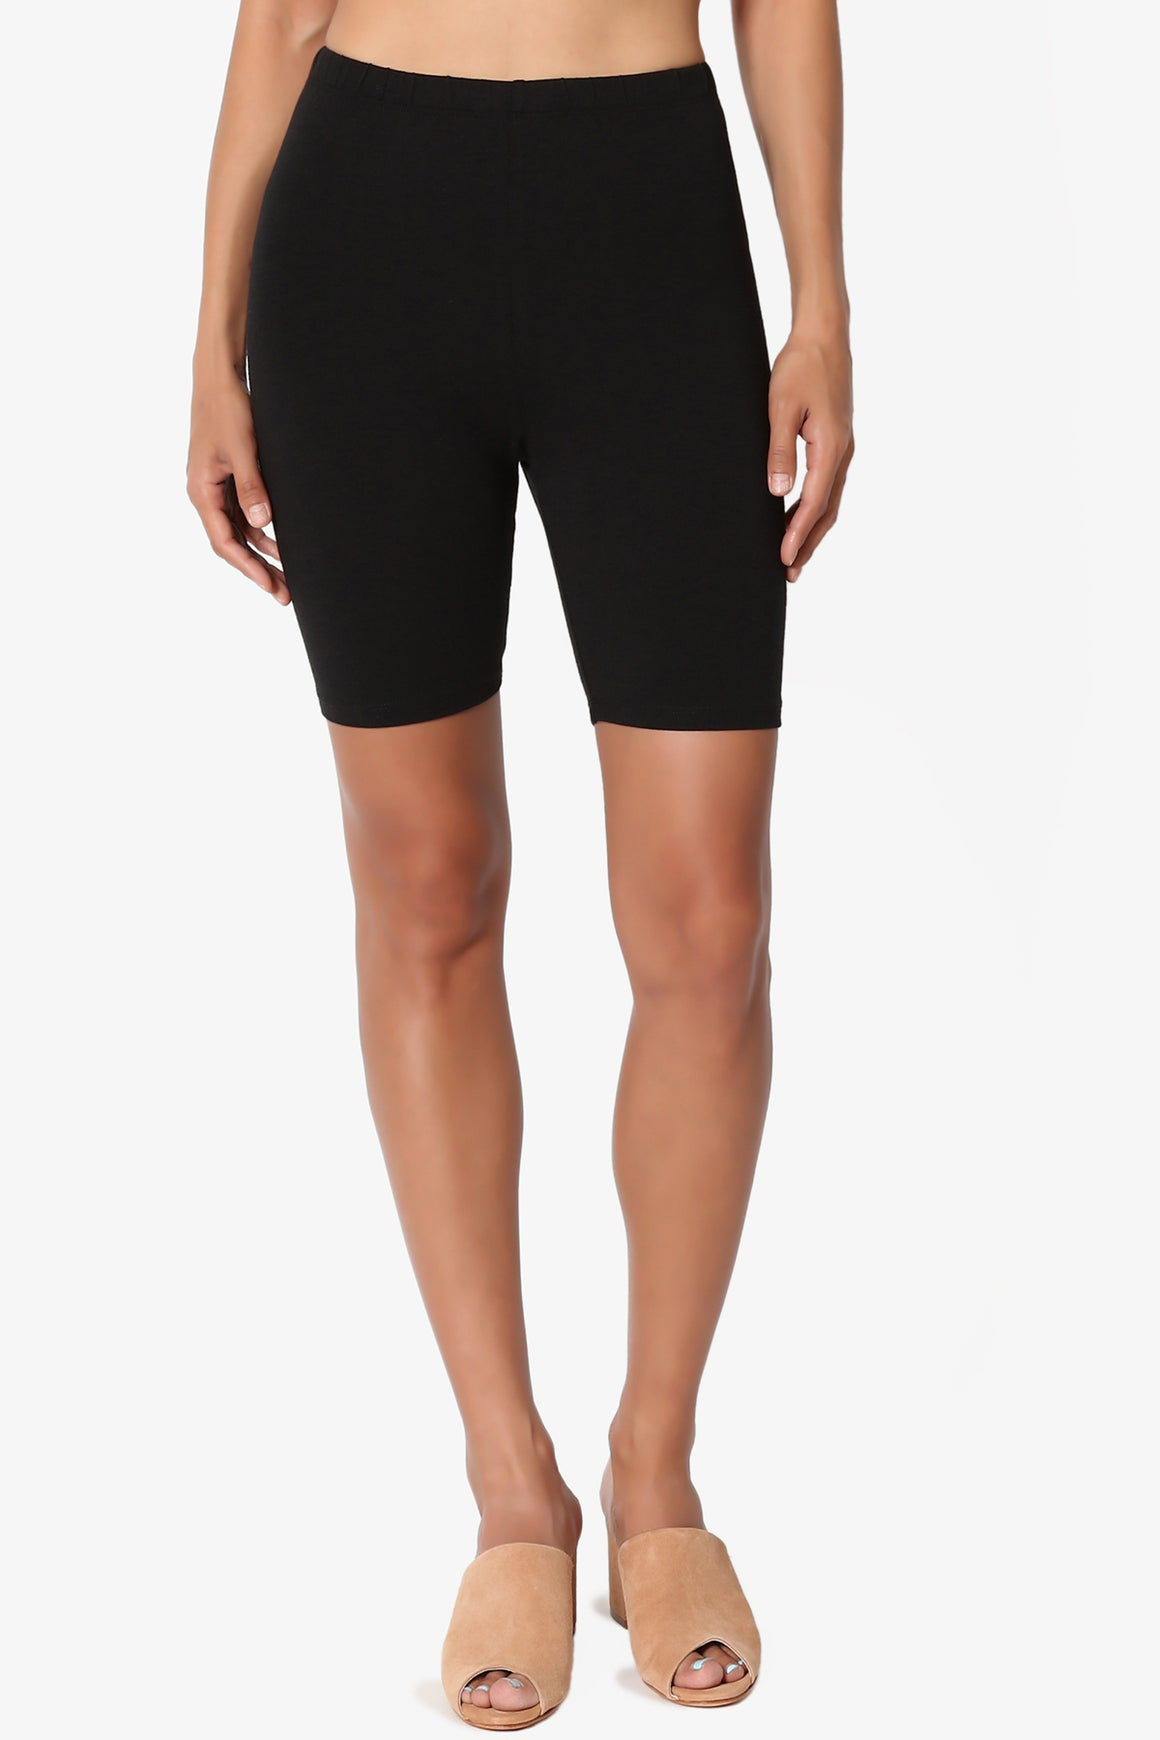 Kite Cotton Biker Short Leggings - TheMogan